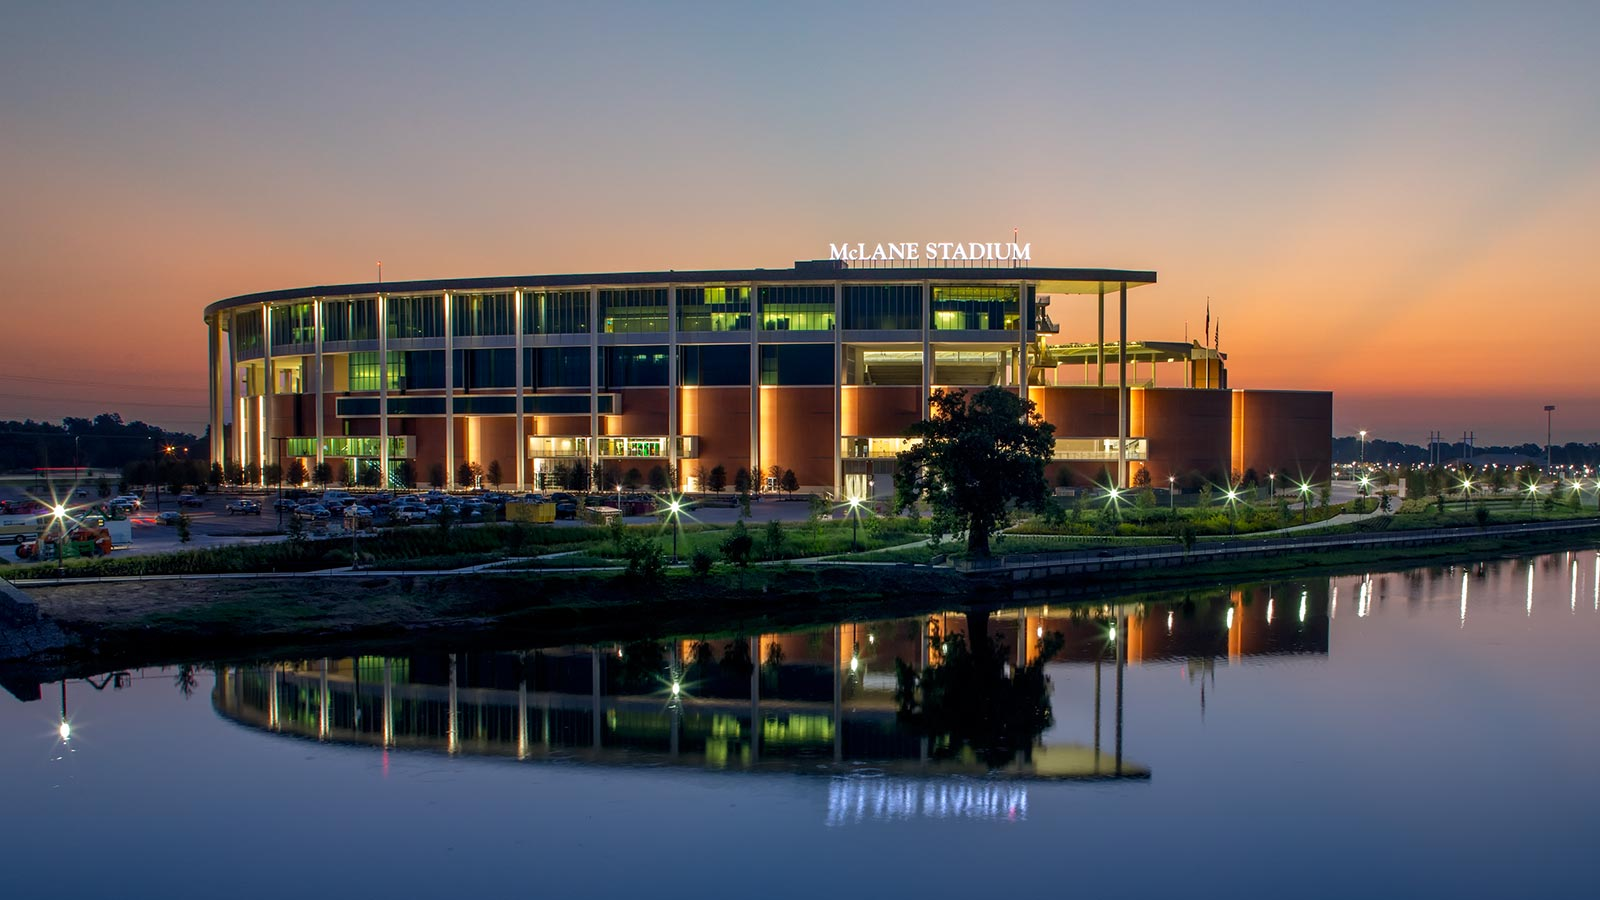 The 2016 campaign marks the third season at McLane Stadium, Baylor's state-of-the-art 45,140-seat home on the banks of the Brazos River.